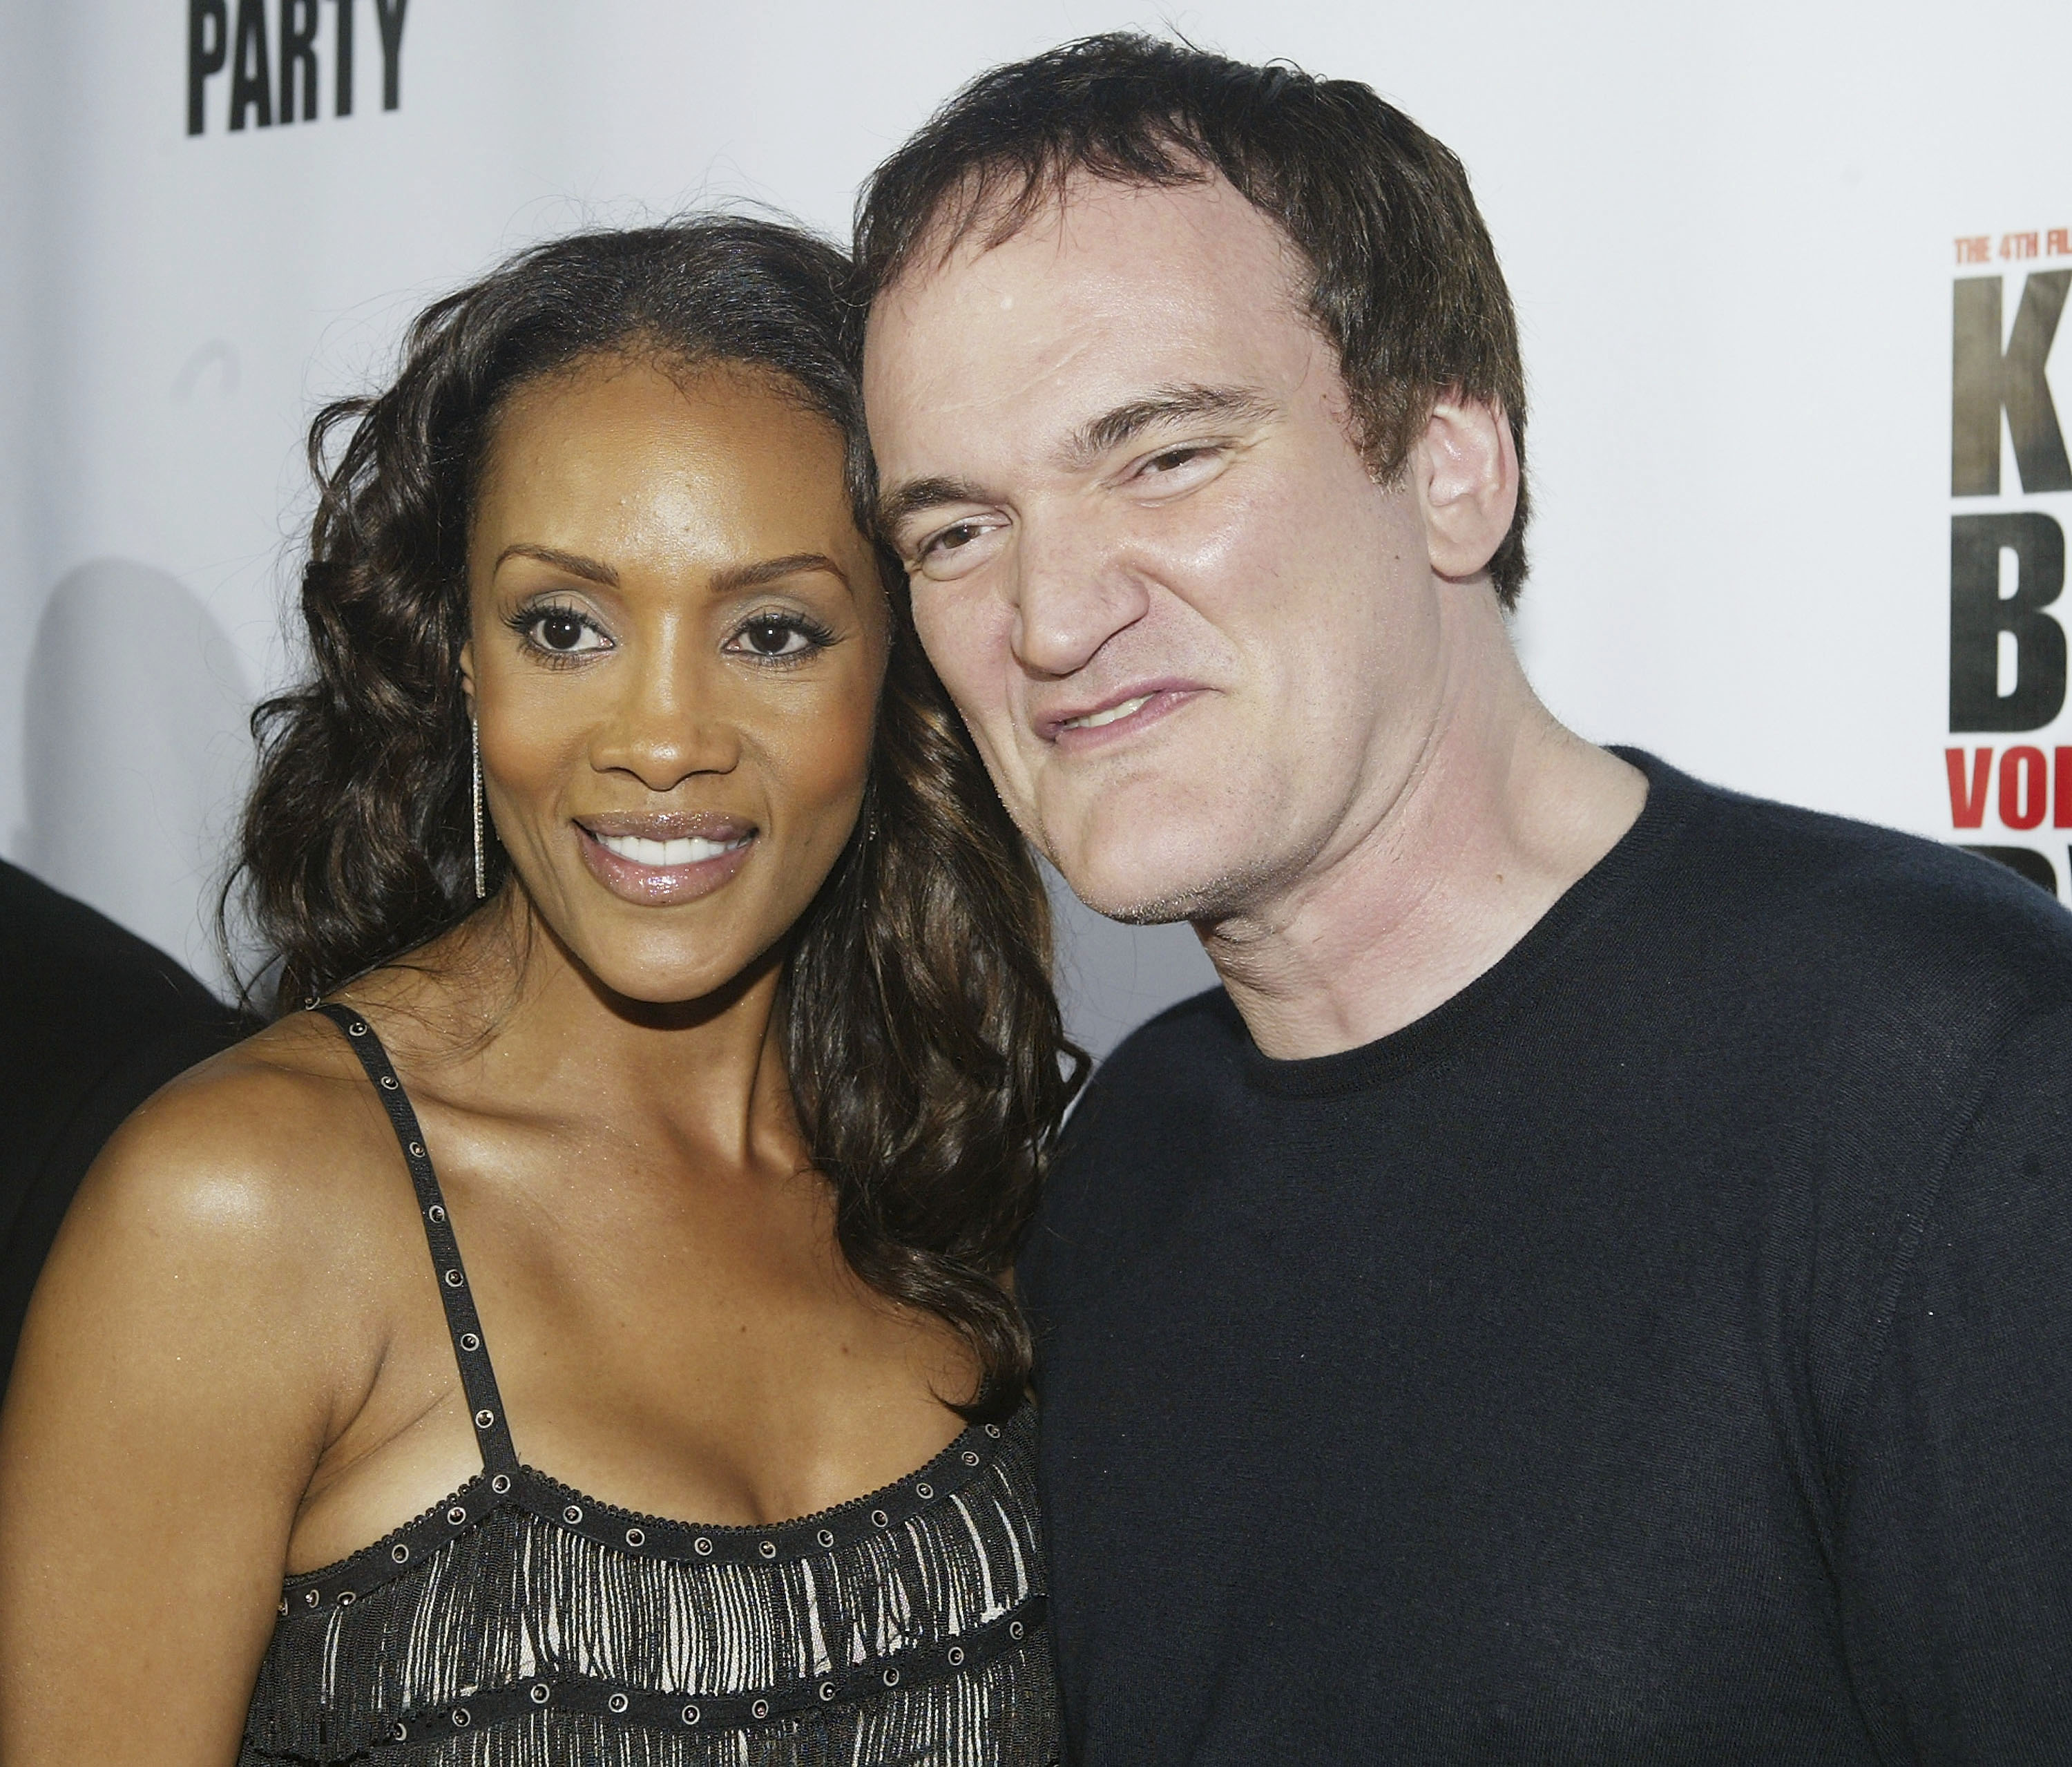 Vivica A. Fox and Quentin Tarantino attend the  Kill Bill Vol. 1 Video Release Party  on April 12, 2004.